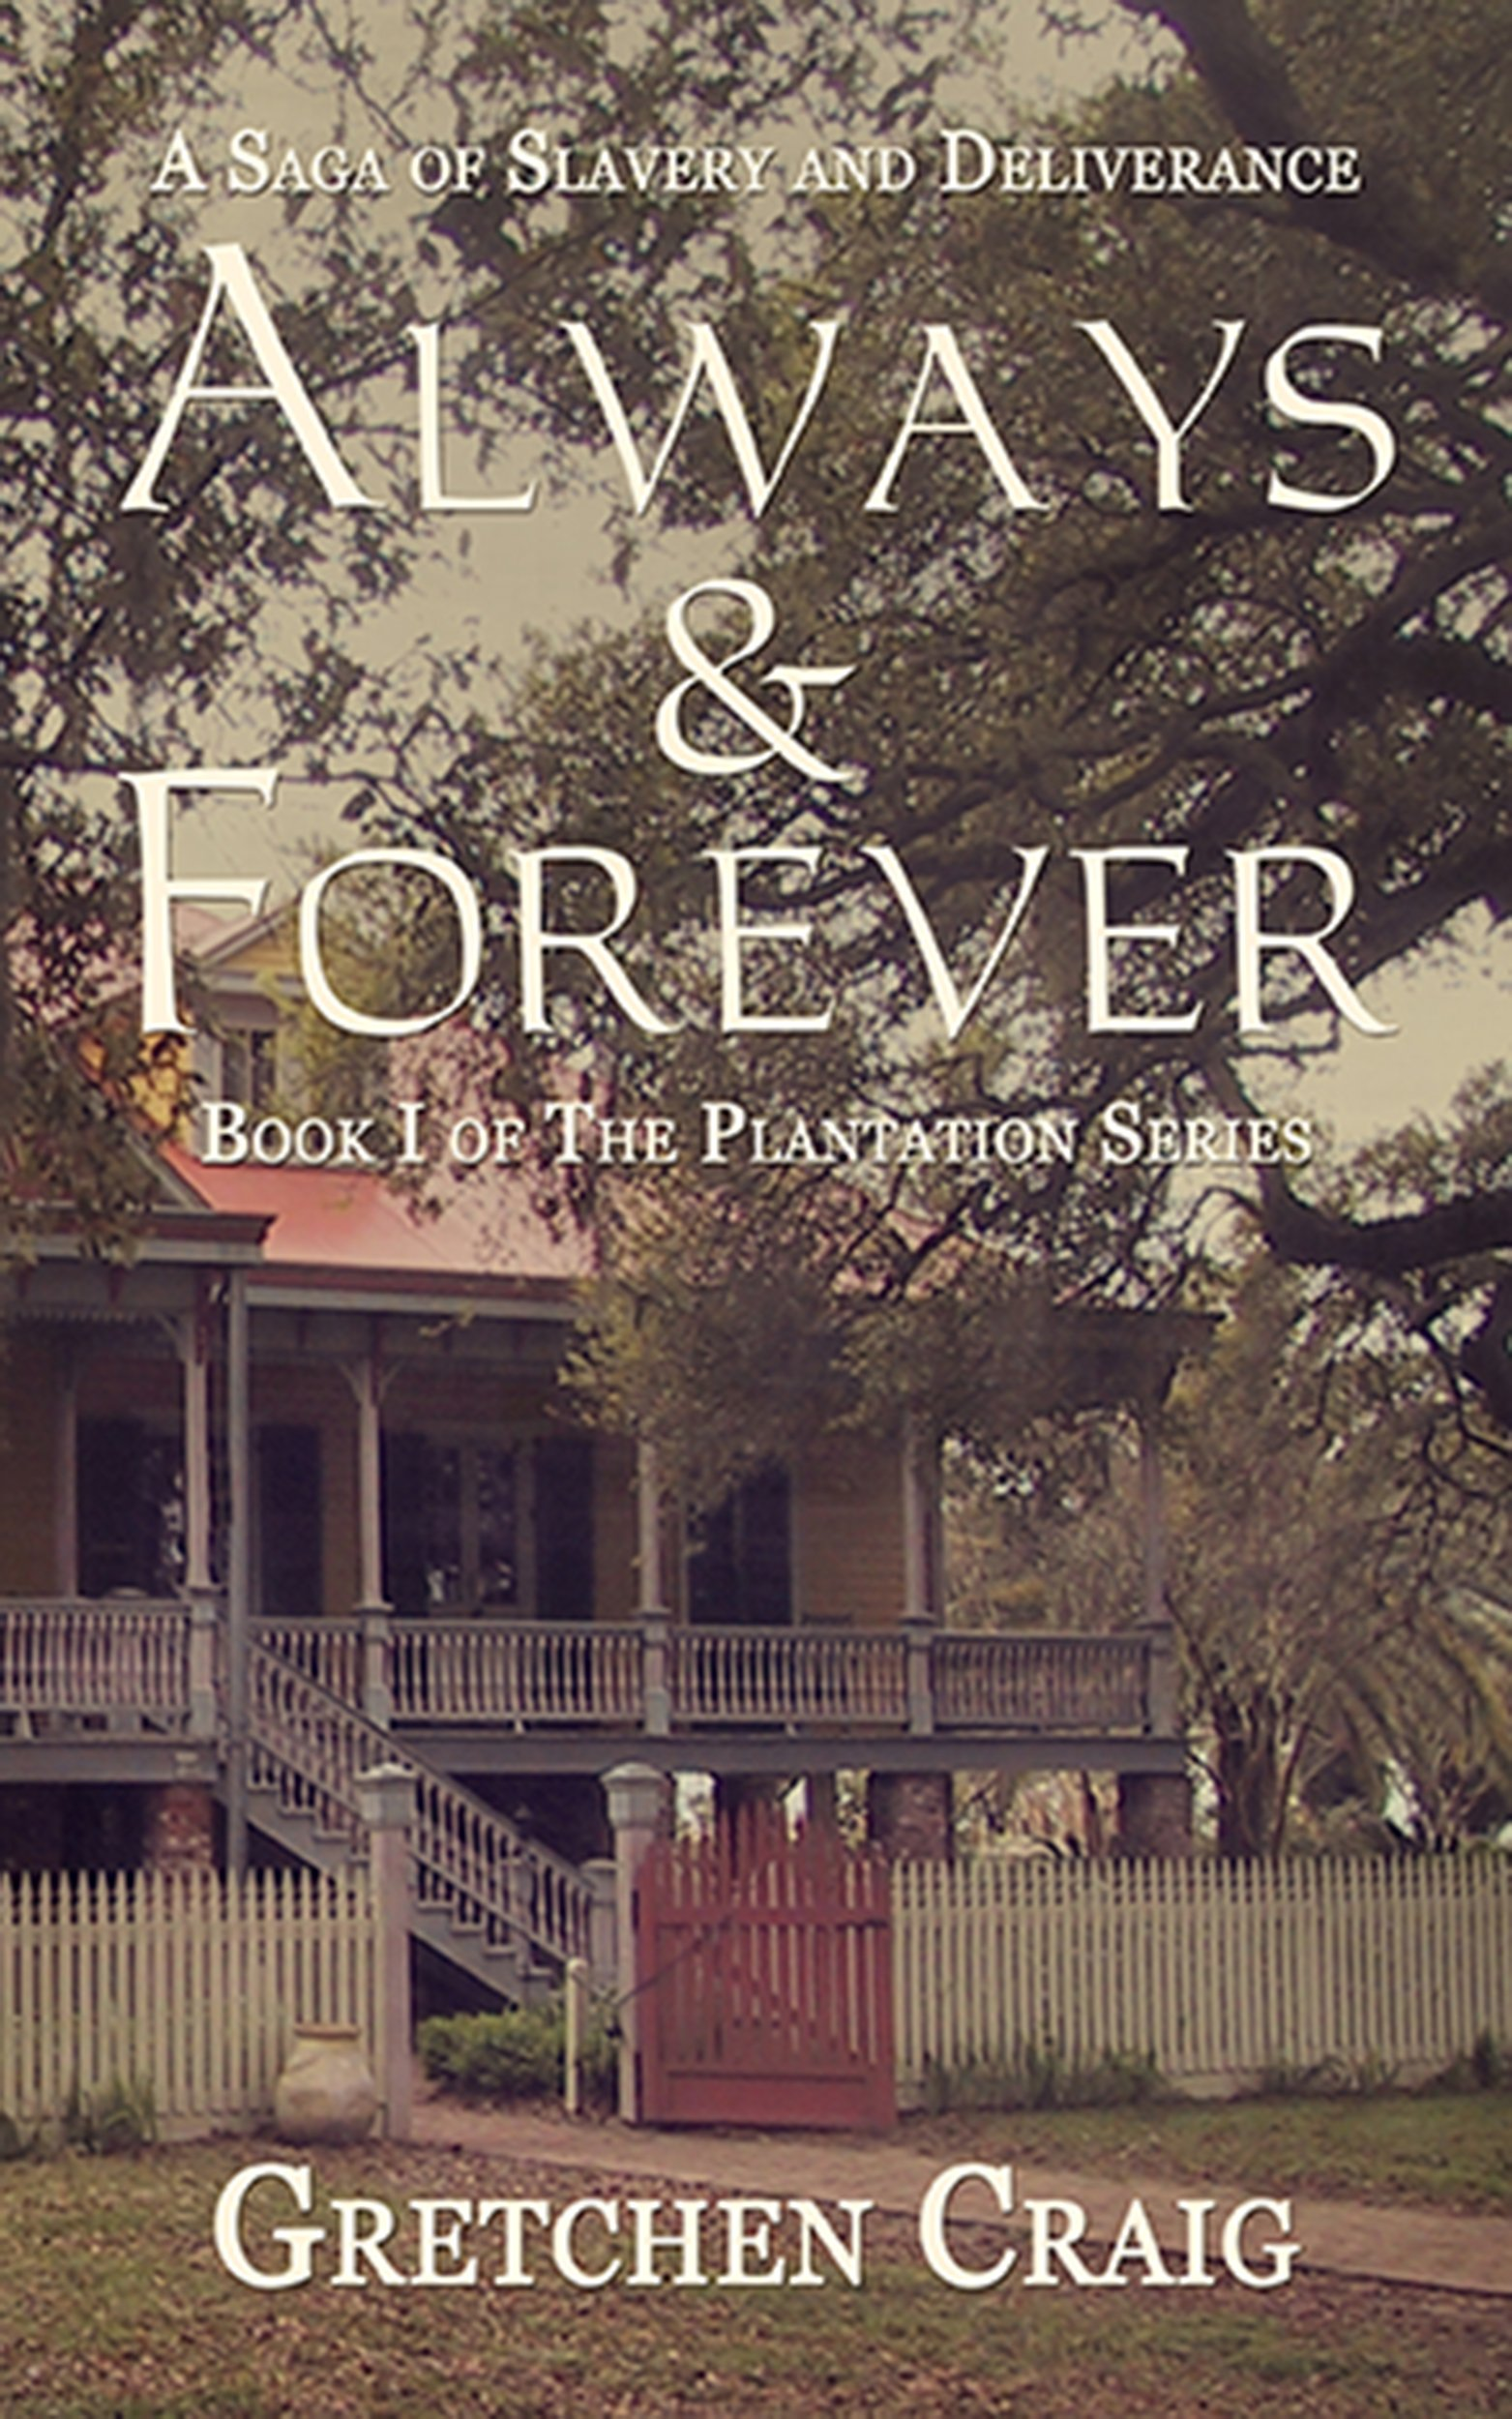 Always And Forever Book Always Forever a Saga of